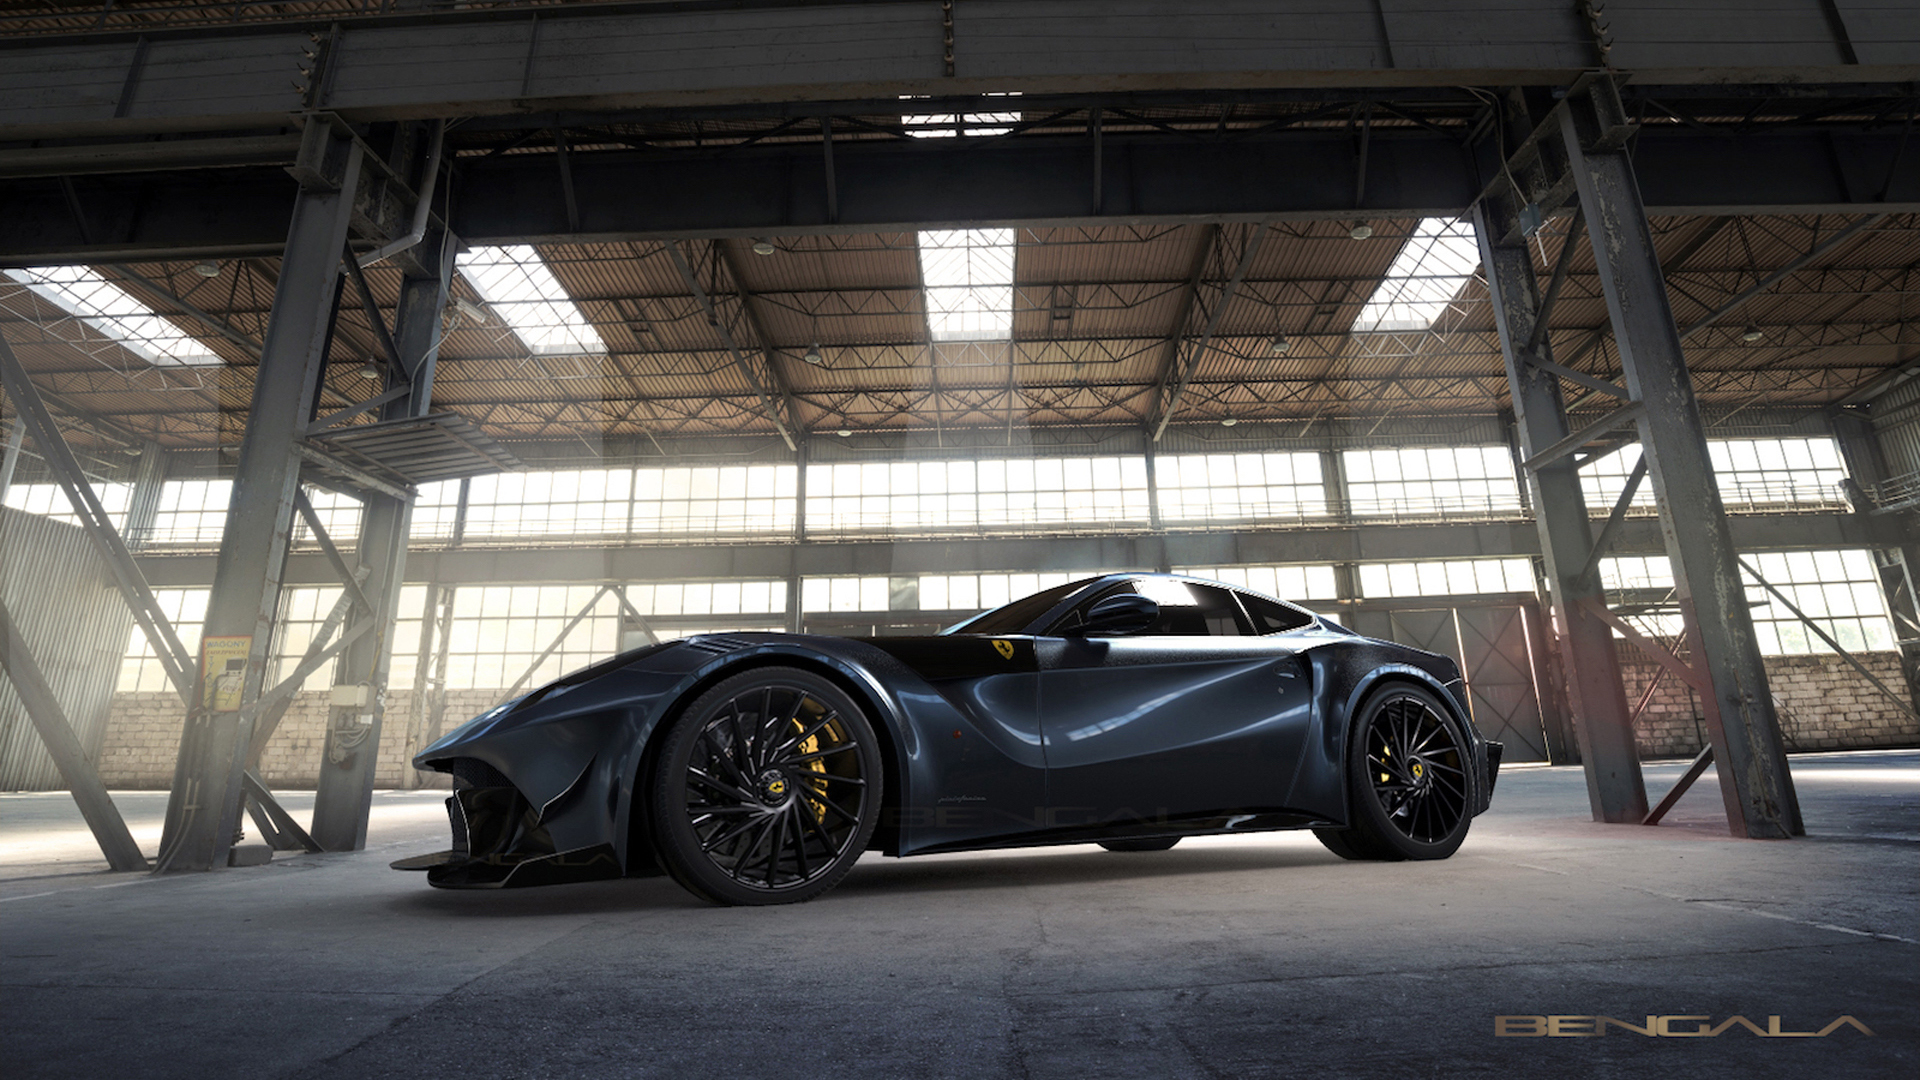 Bengala Takes the Ferrari F12 to the Nth Degree With the F12 Caballería